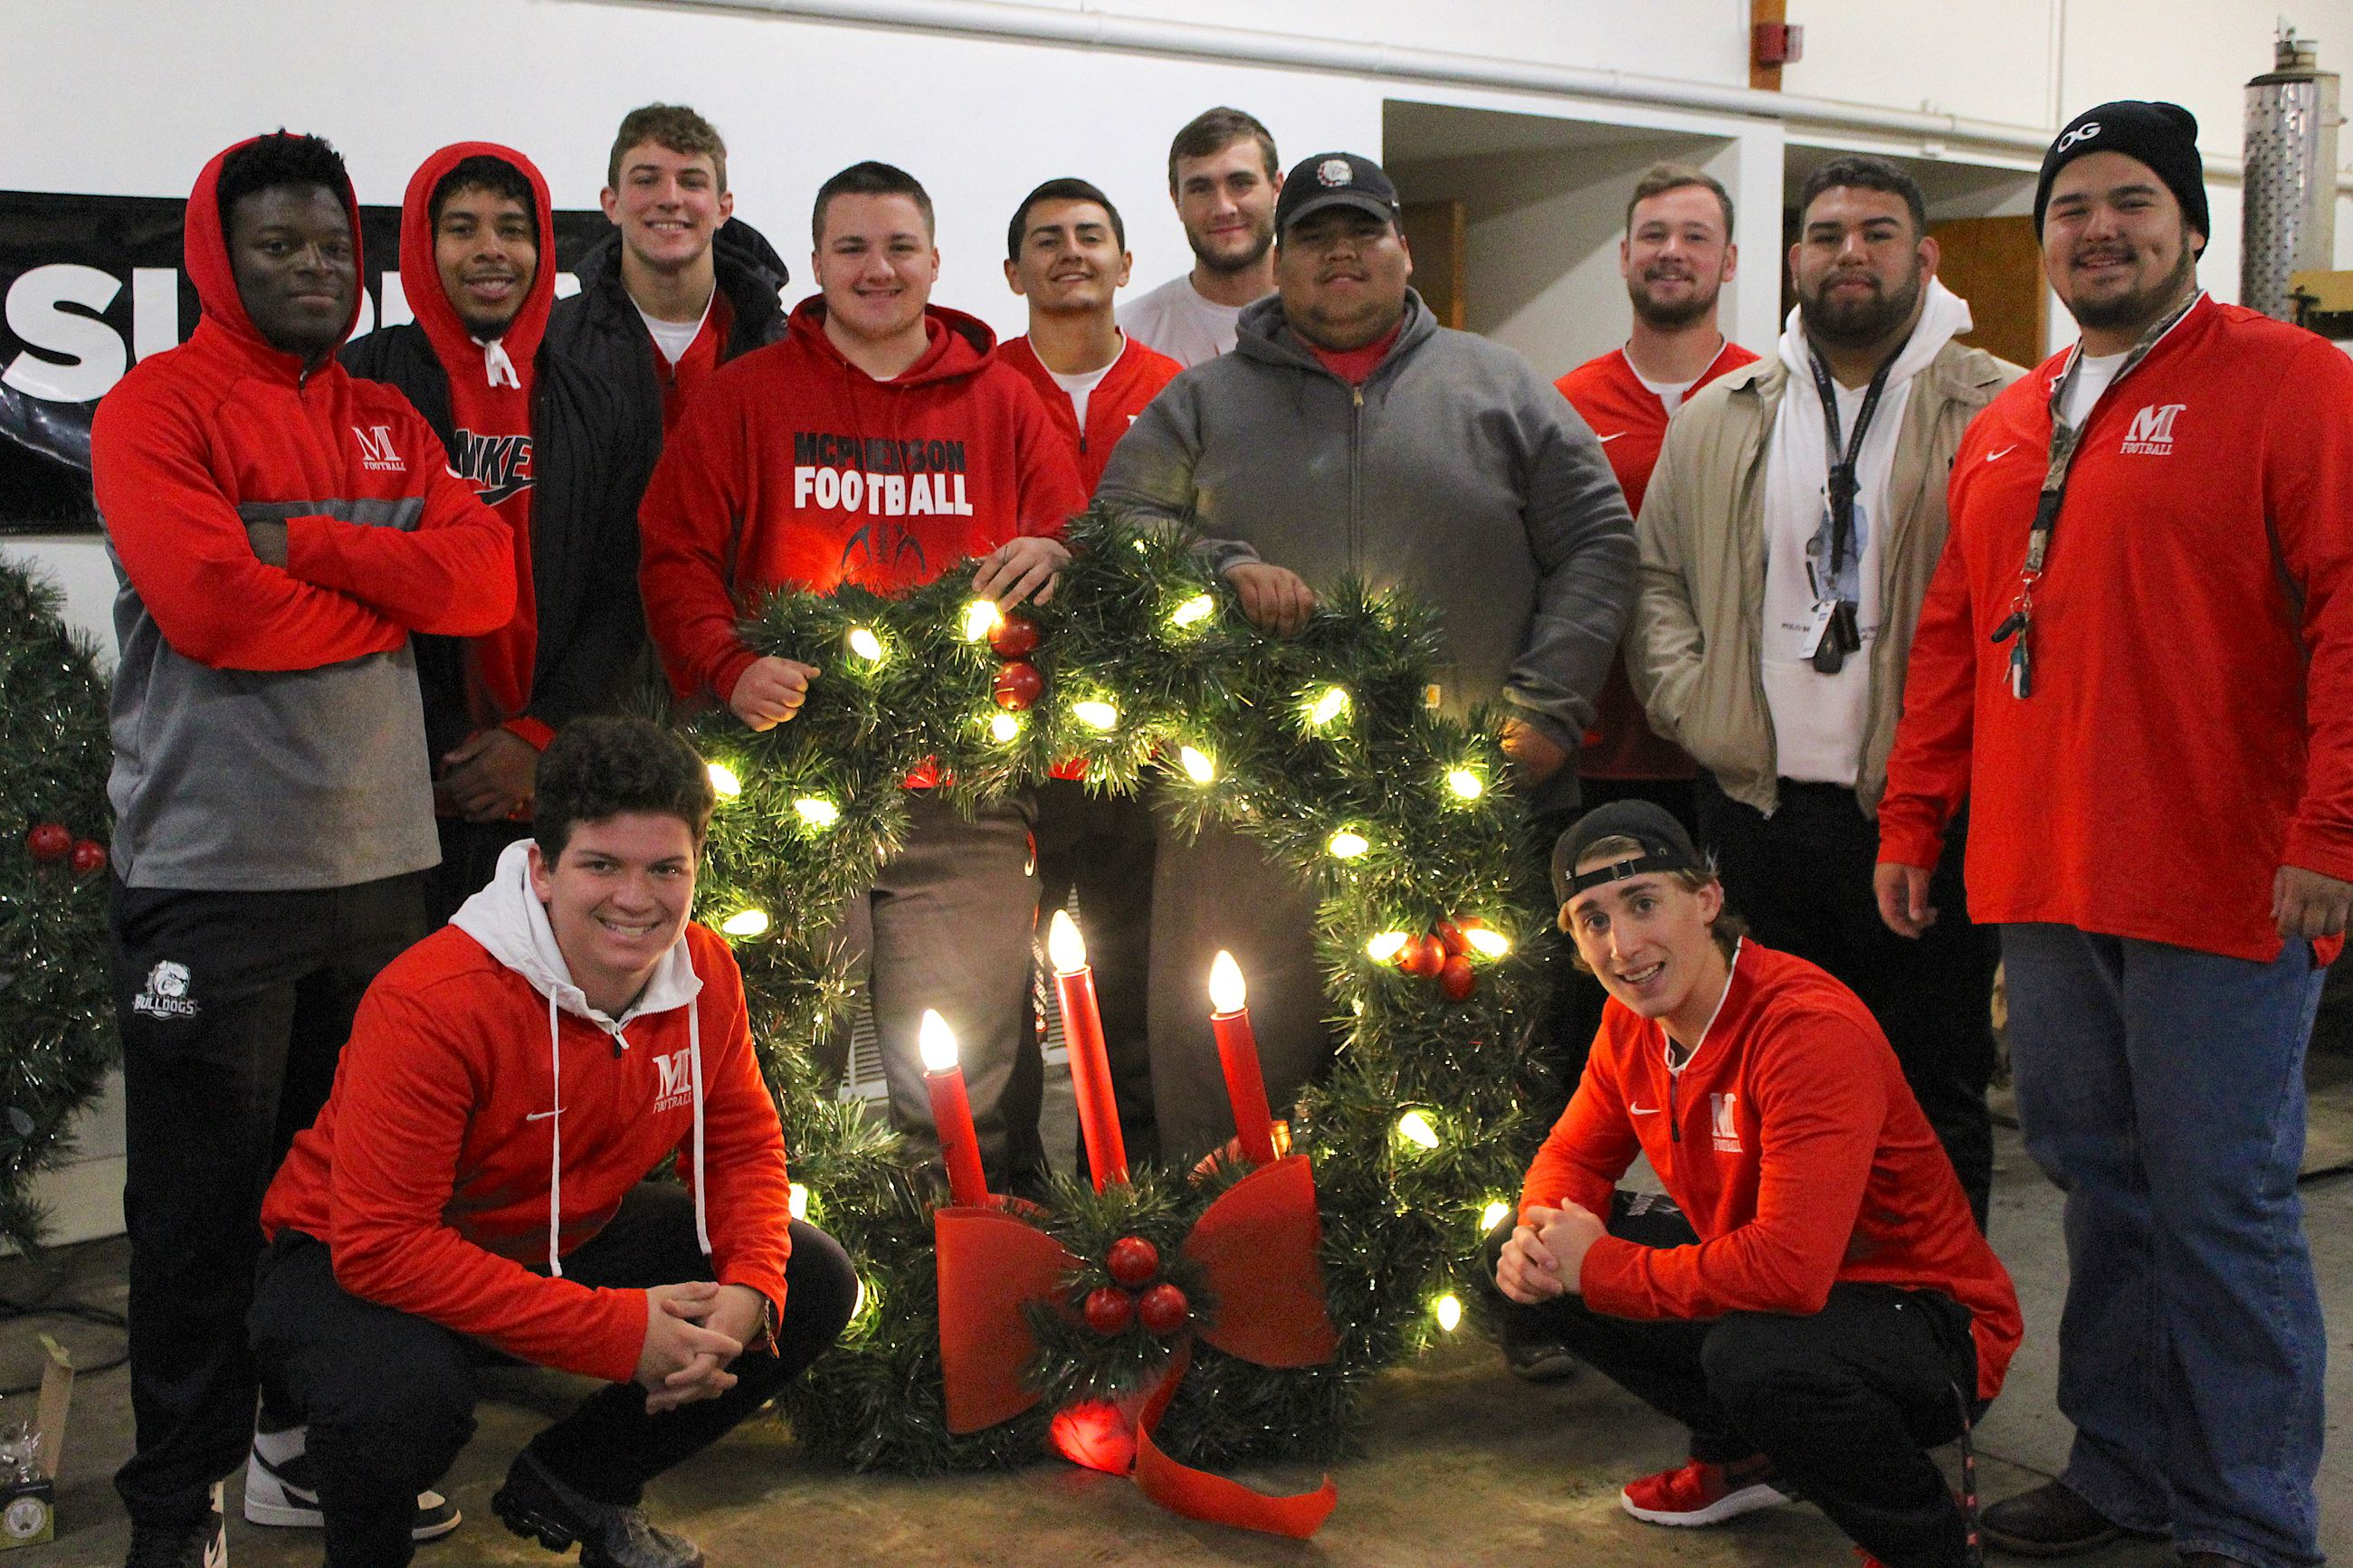 Twelve college football players surround a giant Christmas wreath